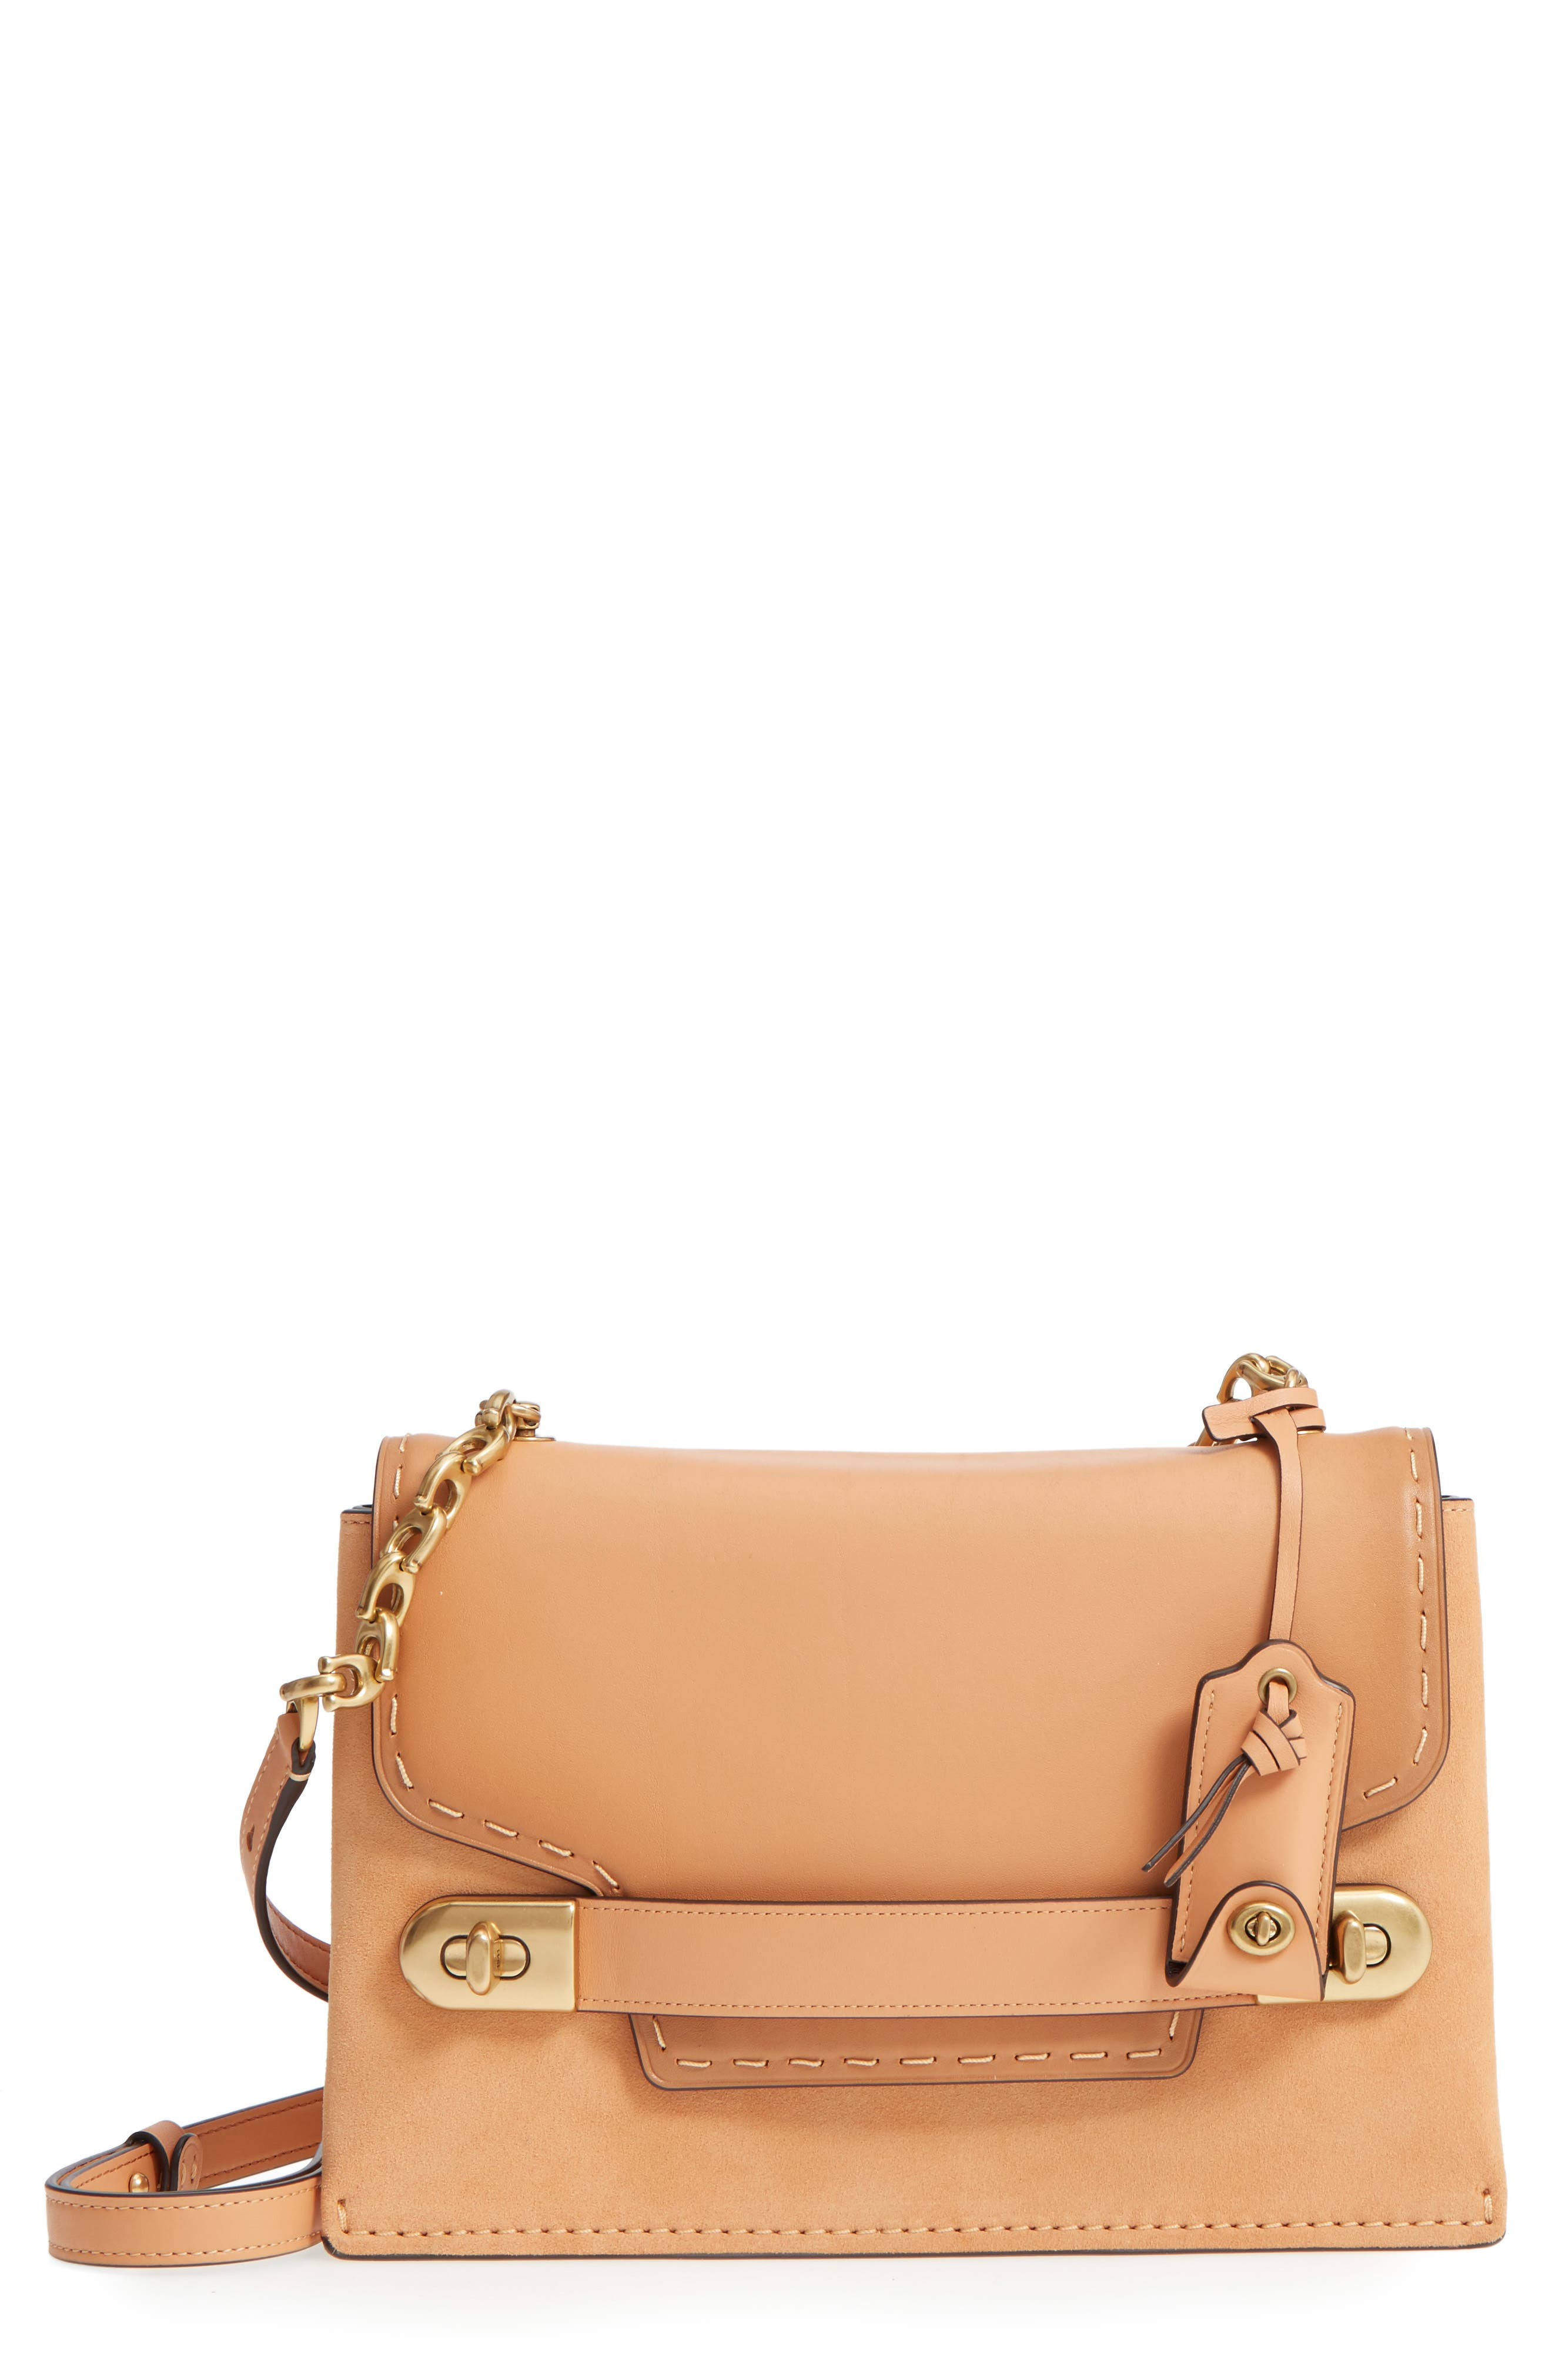 Main Image - COACH 1941 Swagger Chain Leather Crossbody Bag